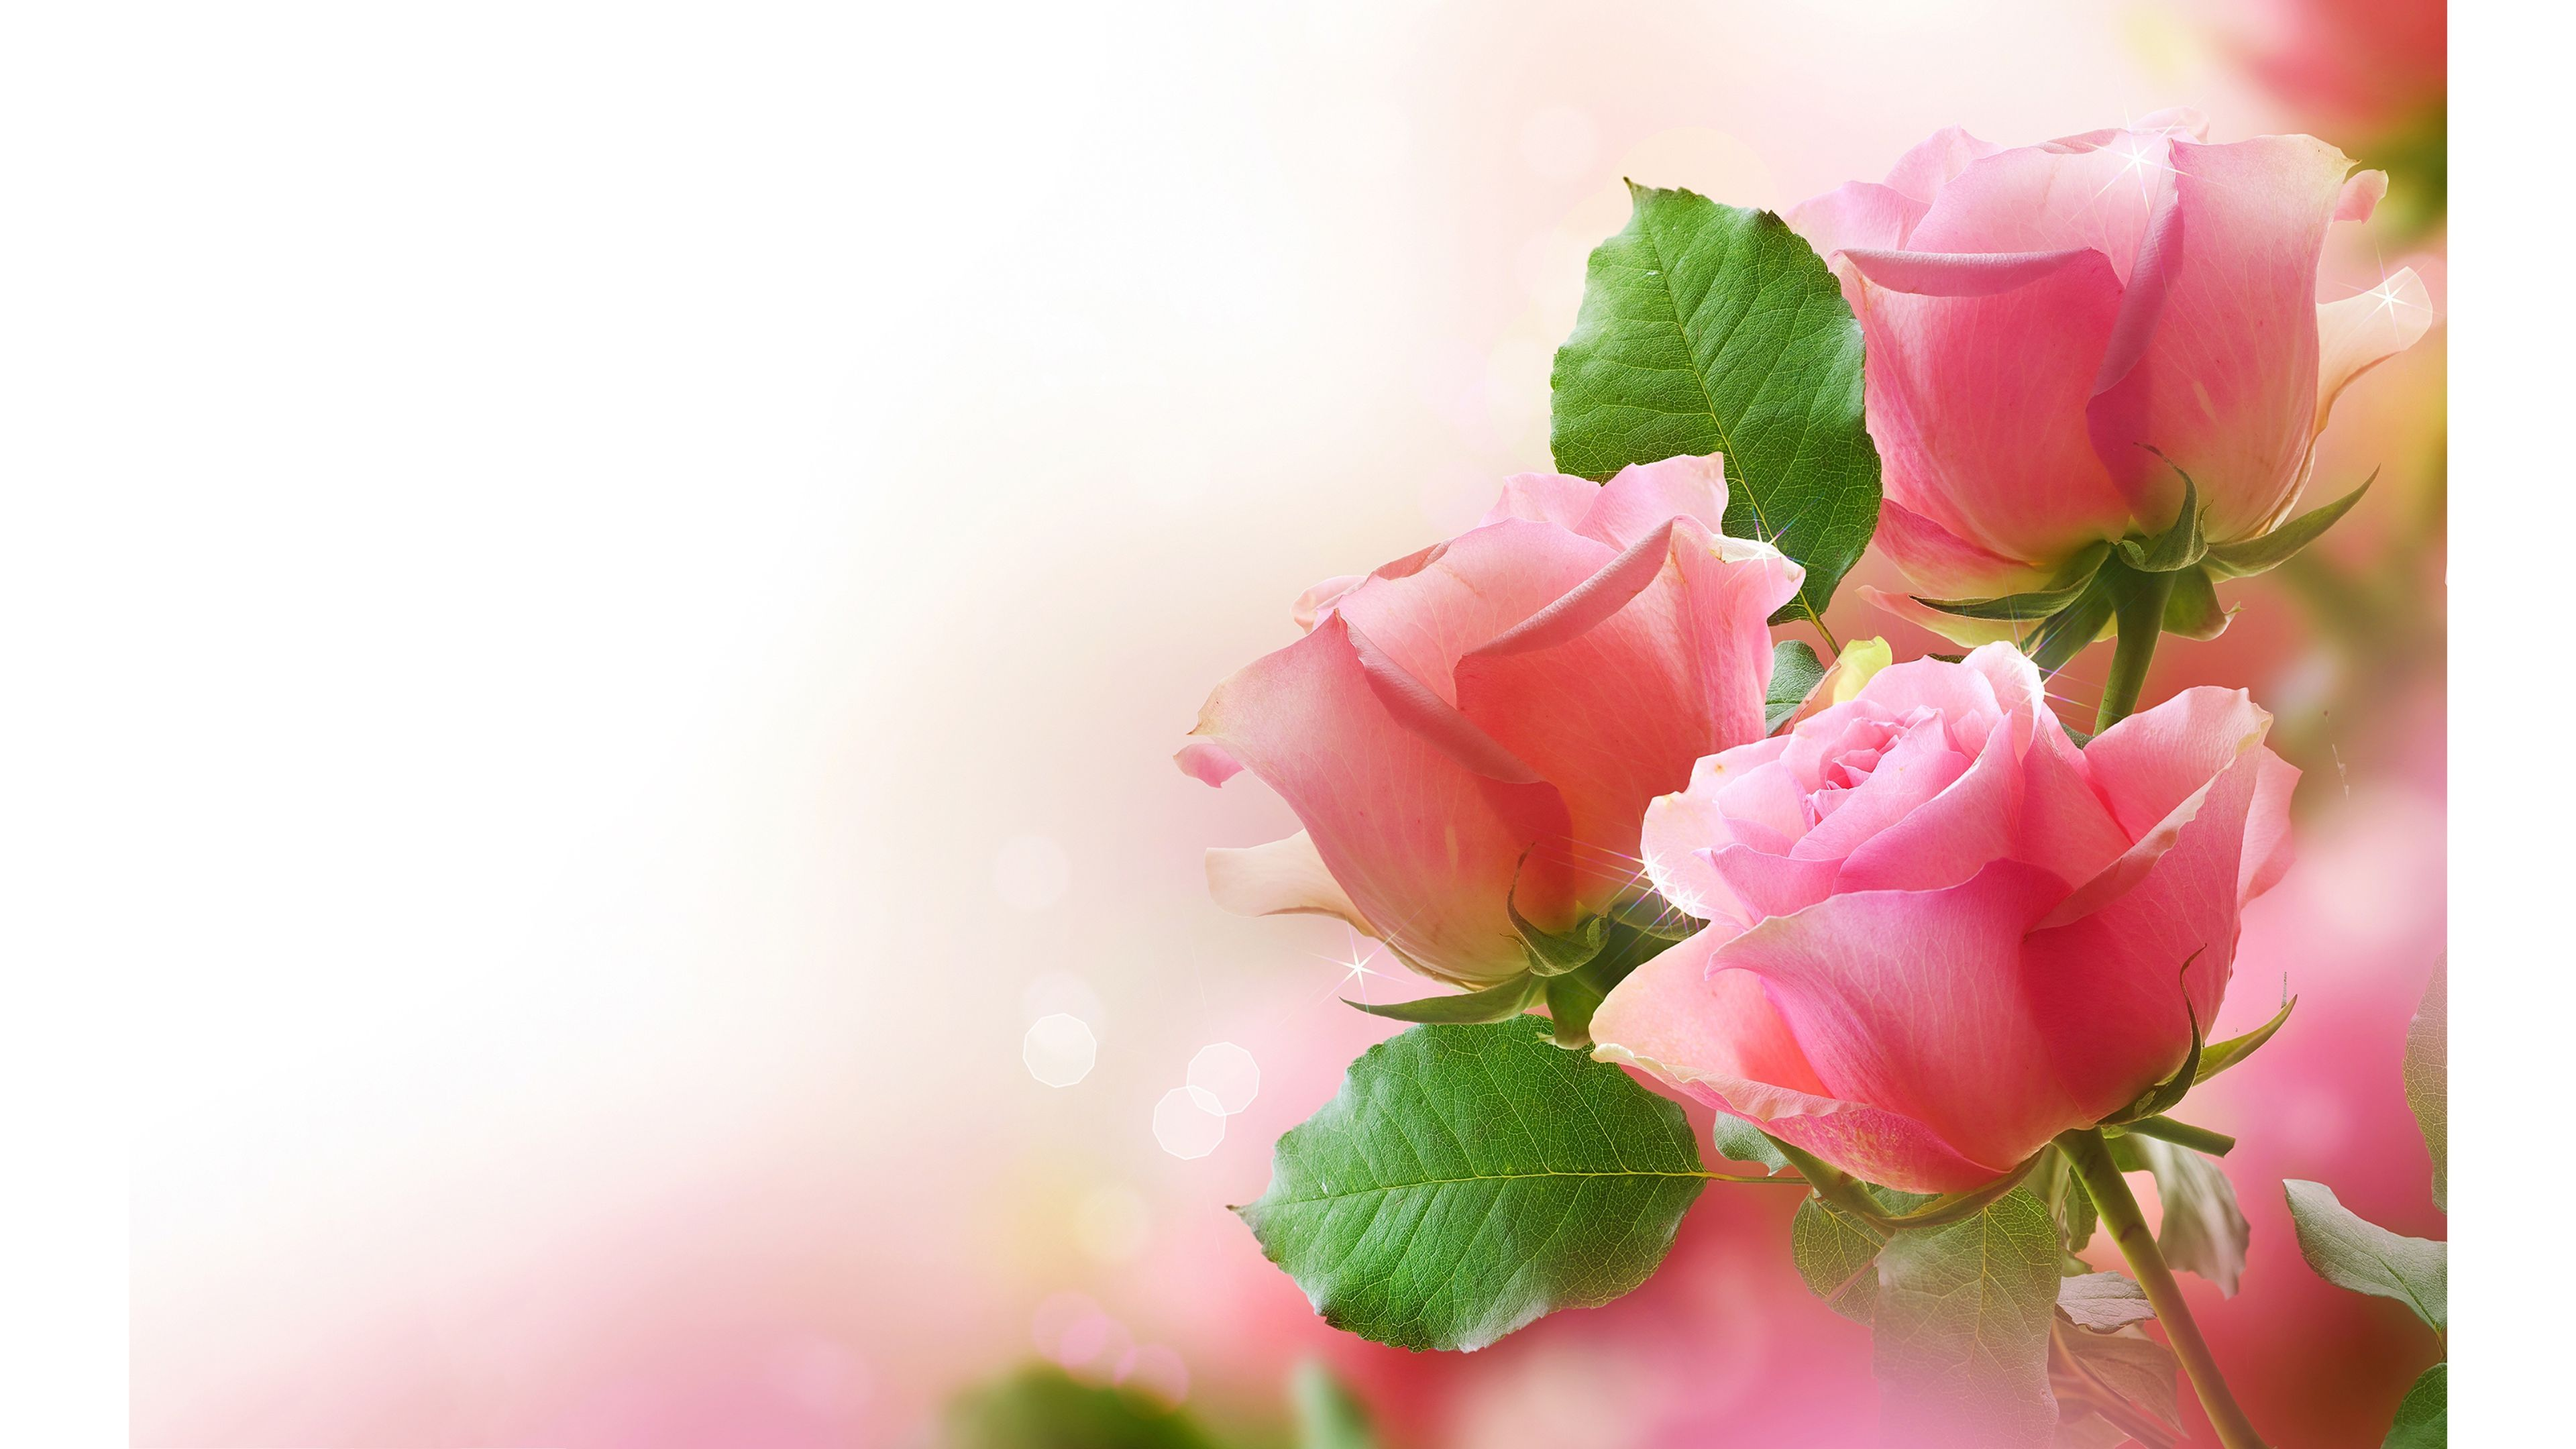 Pink Roses Flower 4k Wallpapers Flowers Ulta HD 4K